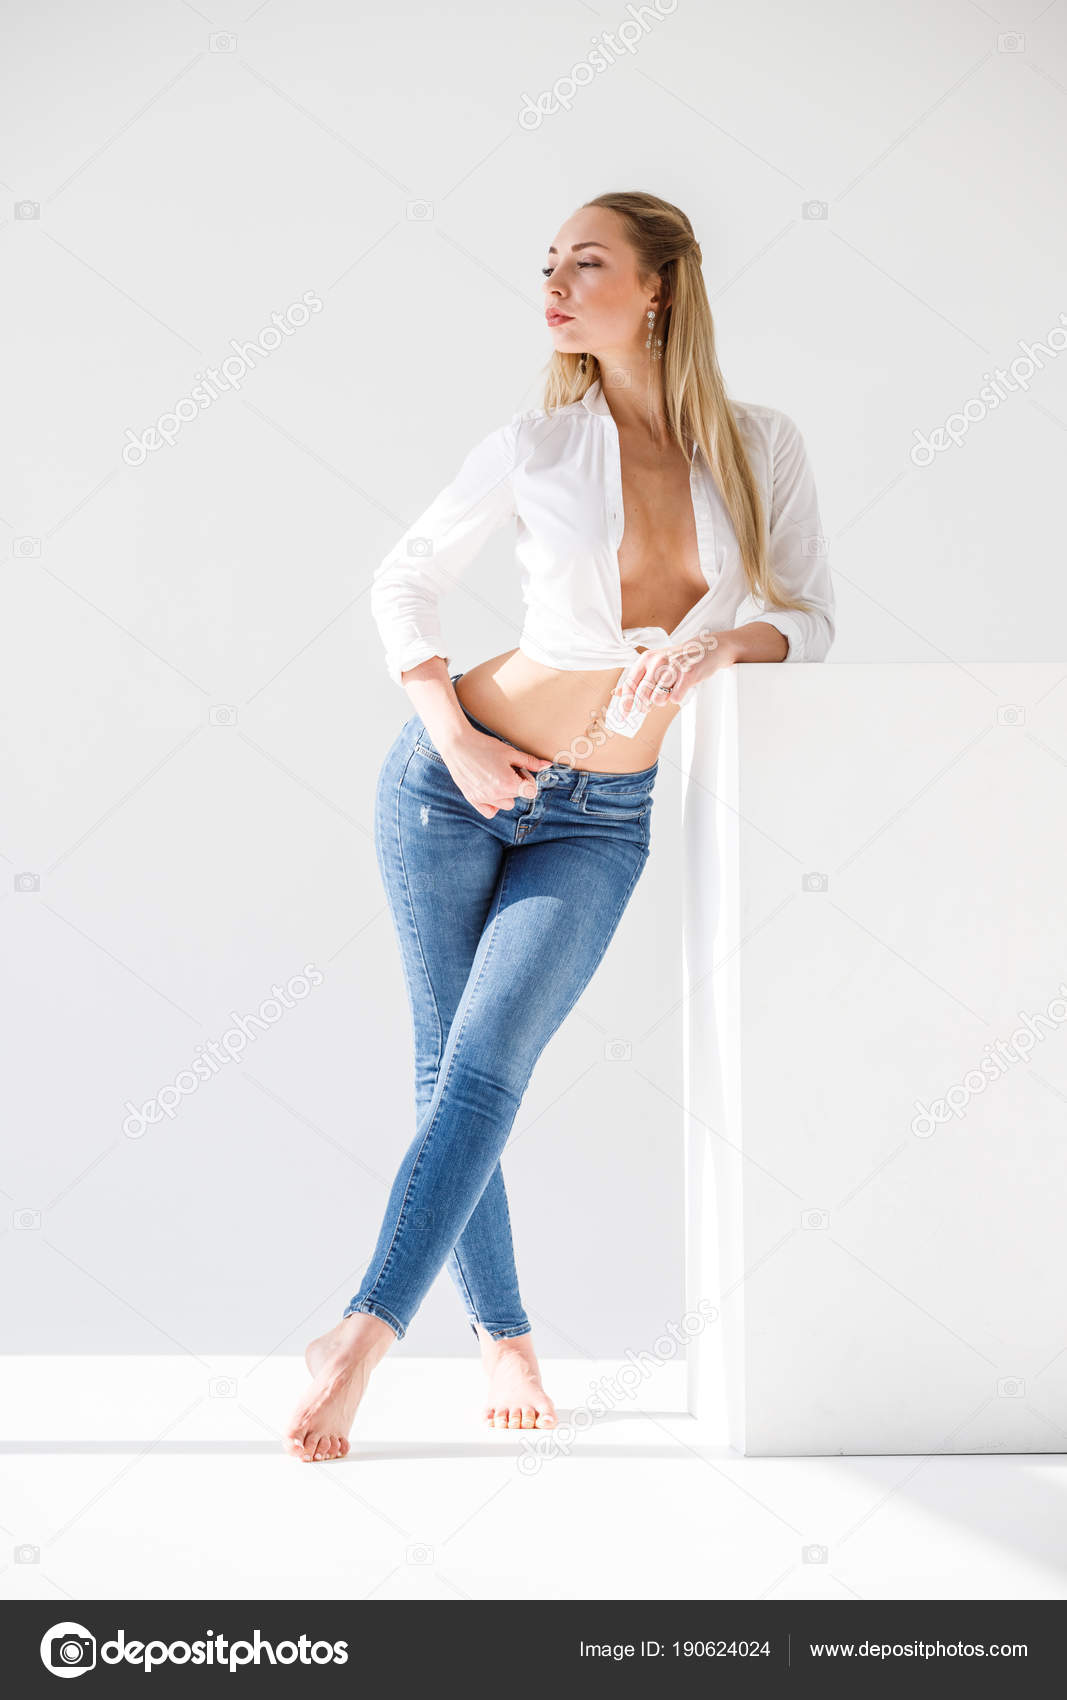 Sexy girl standing barefoot consider